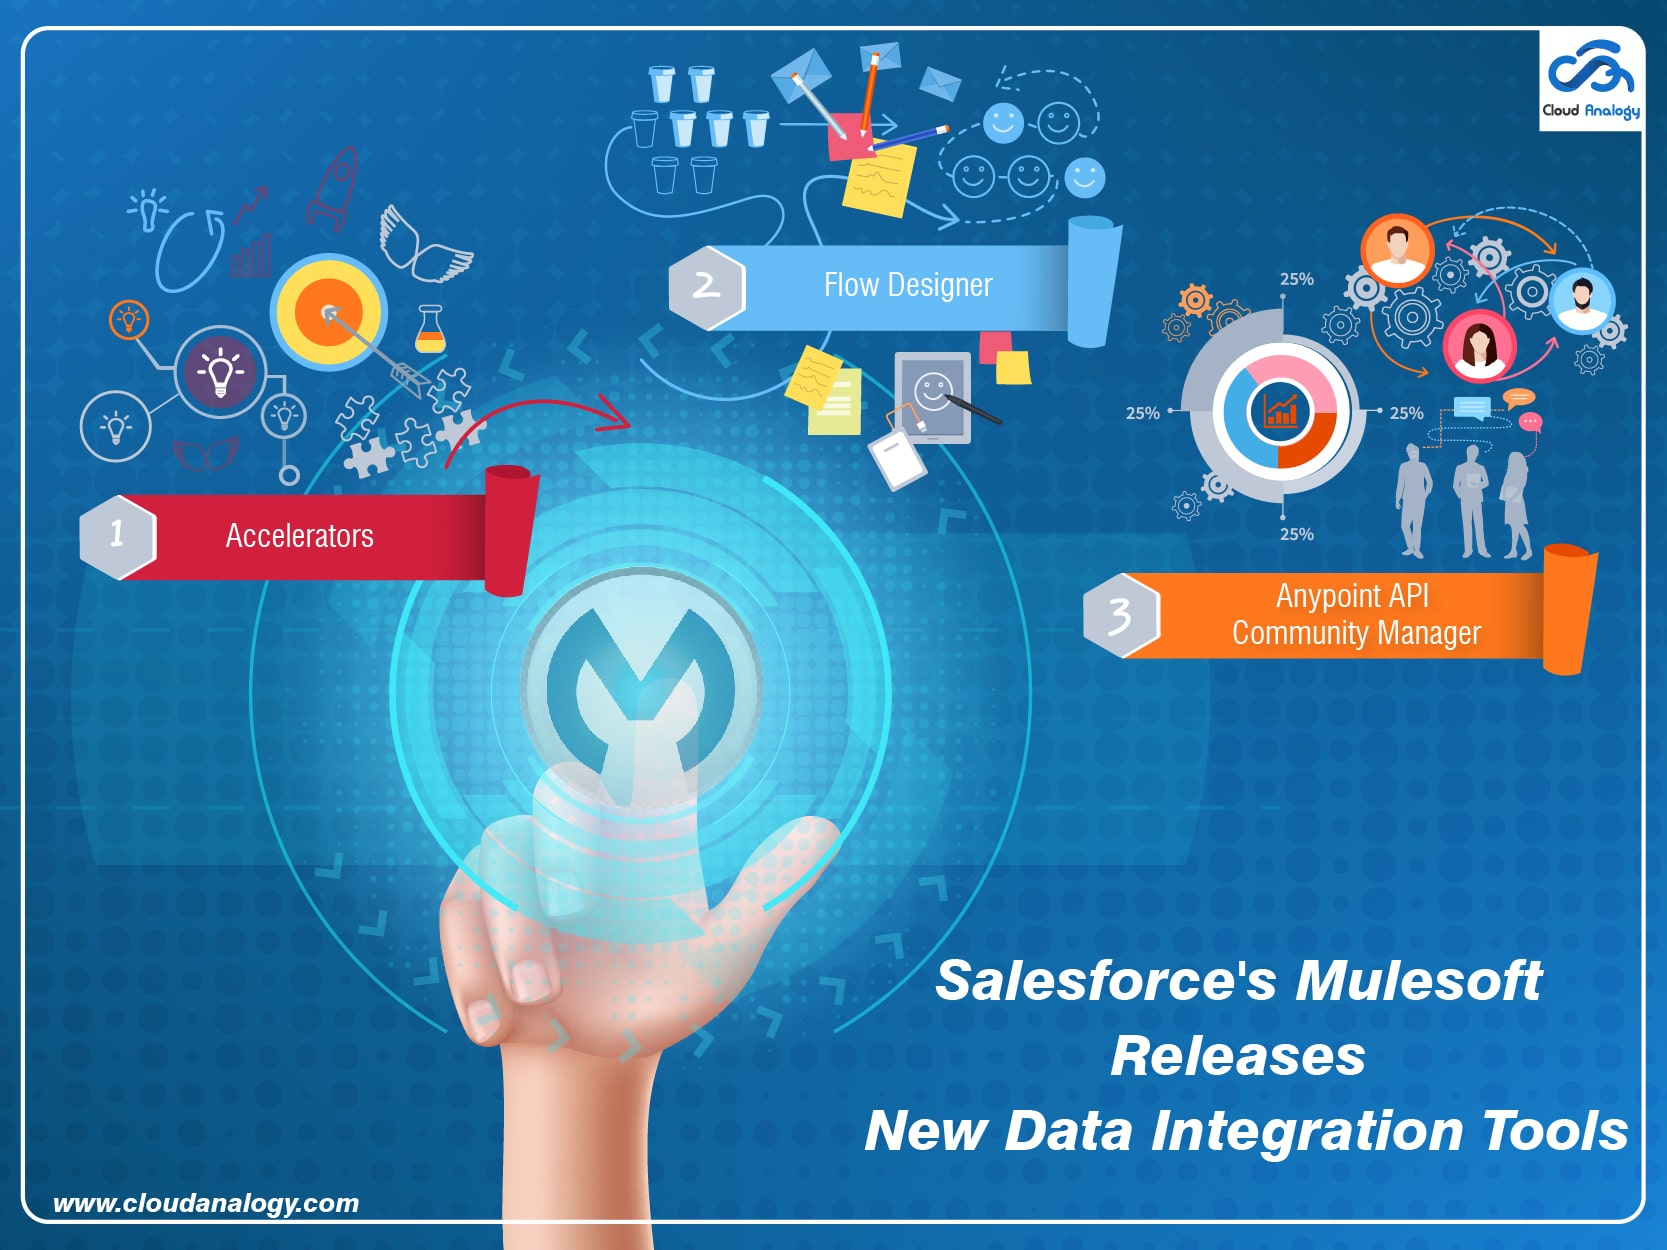 Salesforce's Mulesoft Releases New Data Integration Tools